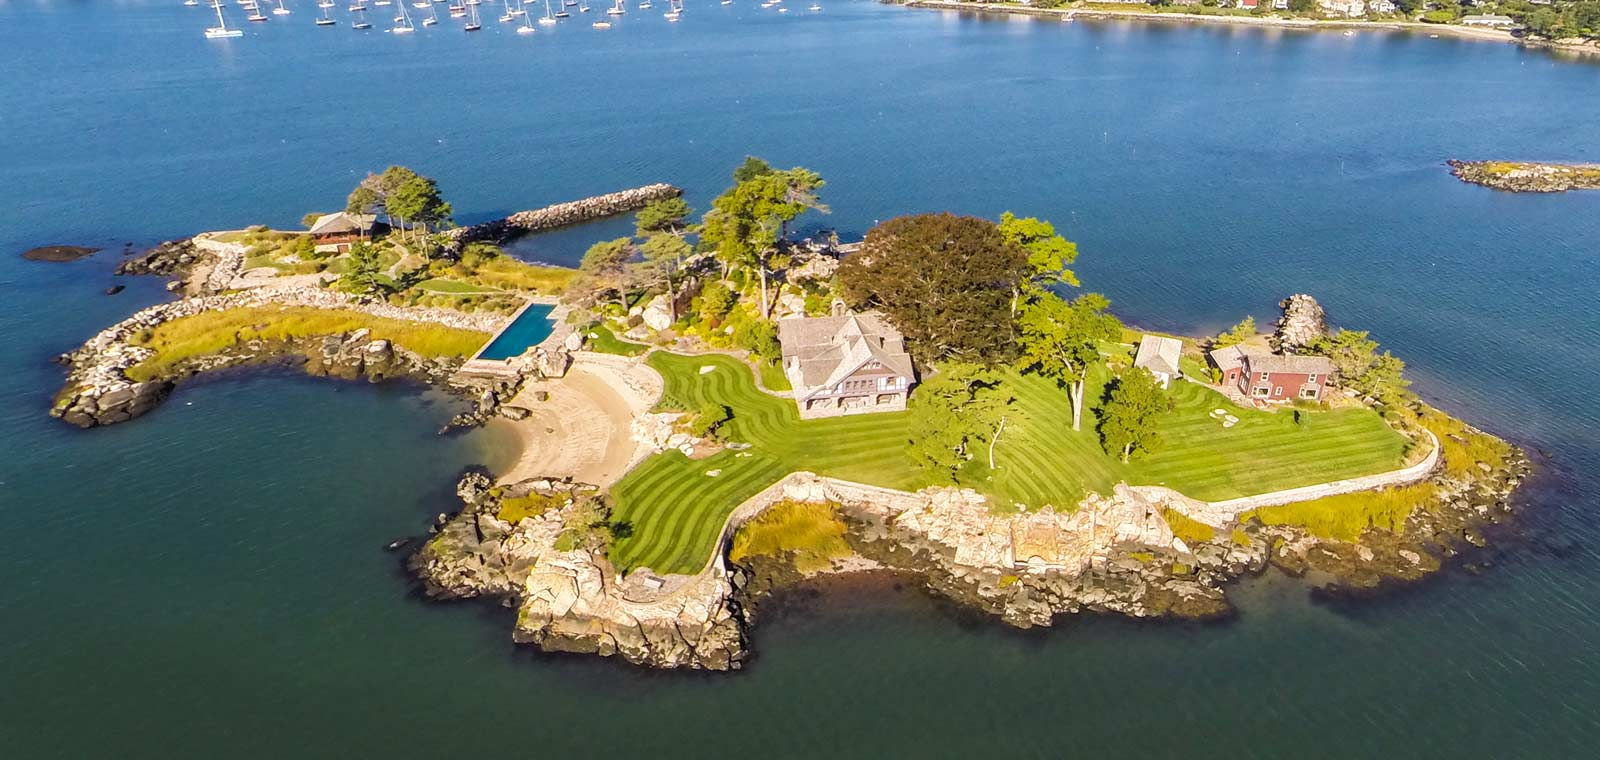 aerial view of a property in an island higginsgroup.com